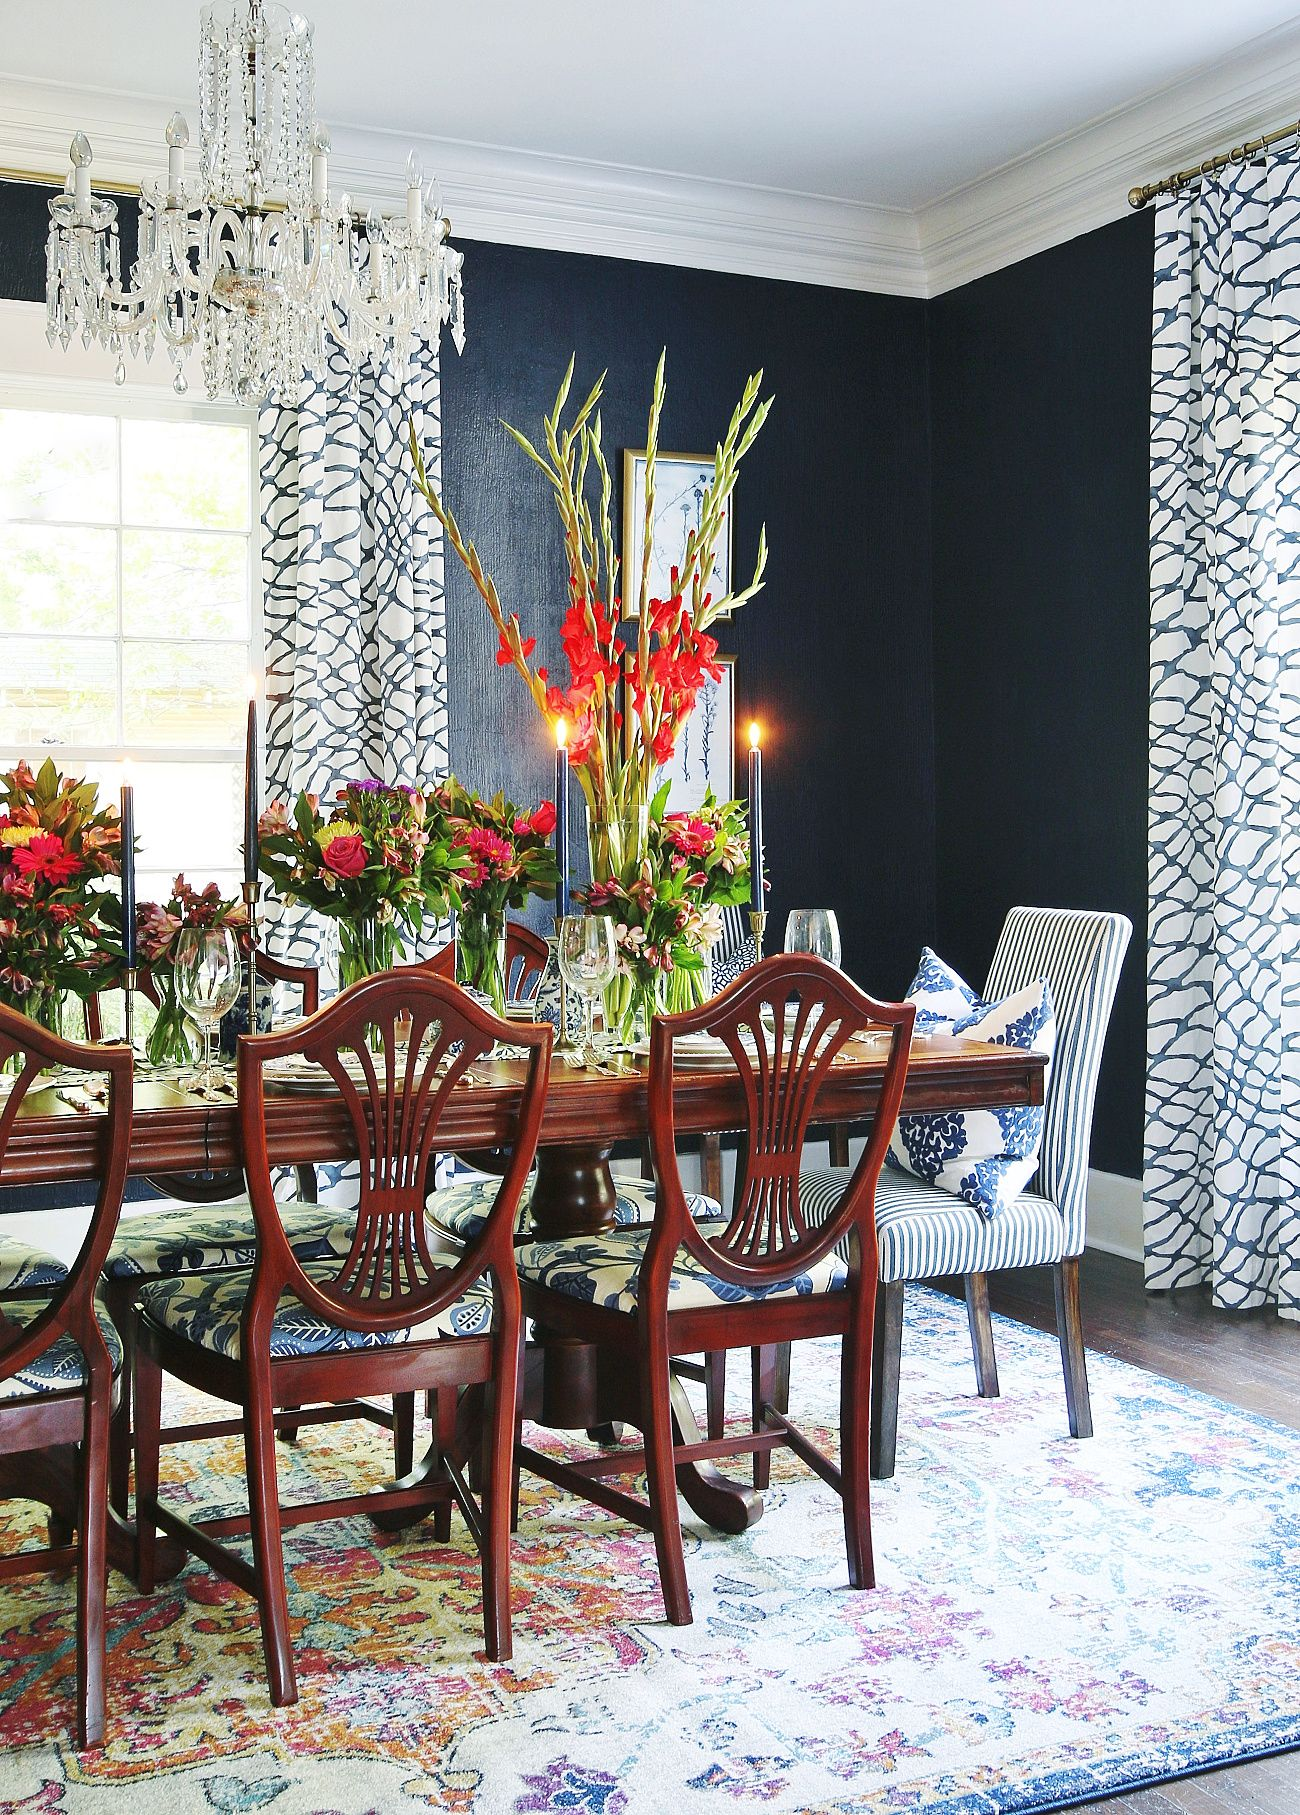 Before and After Dining Room Makeover With the Sherwin-Williams Color Of the Year - Thistlewood Farm